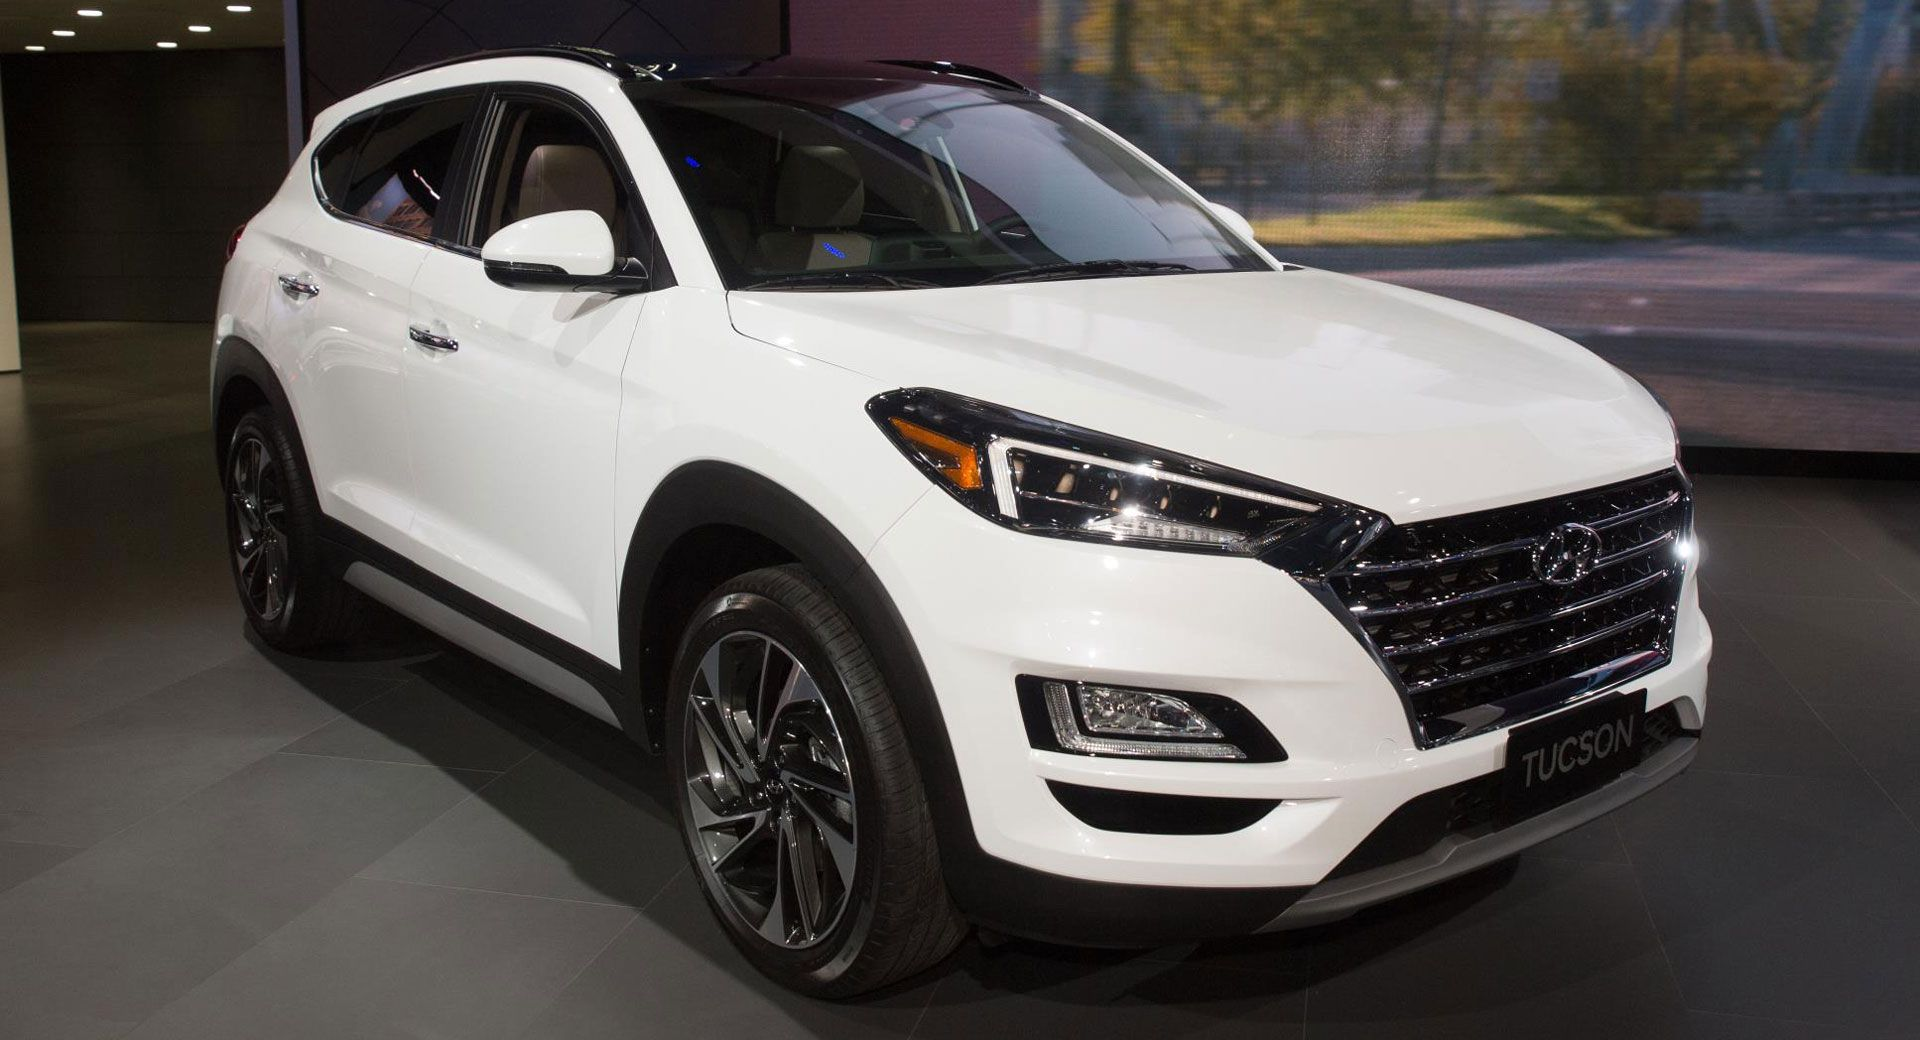 2019 Hyundai Tucson Gets A Mild Makeover Inside And Out Carscoops Hyundai Tucson Hyundai Buick Envision